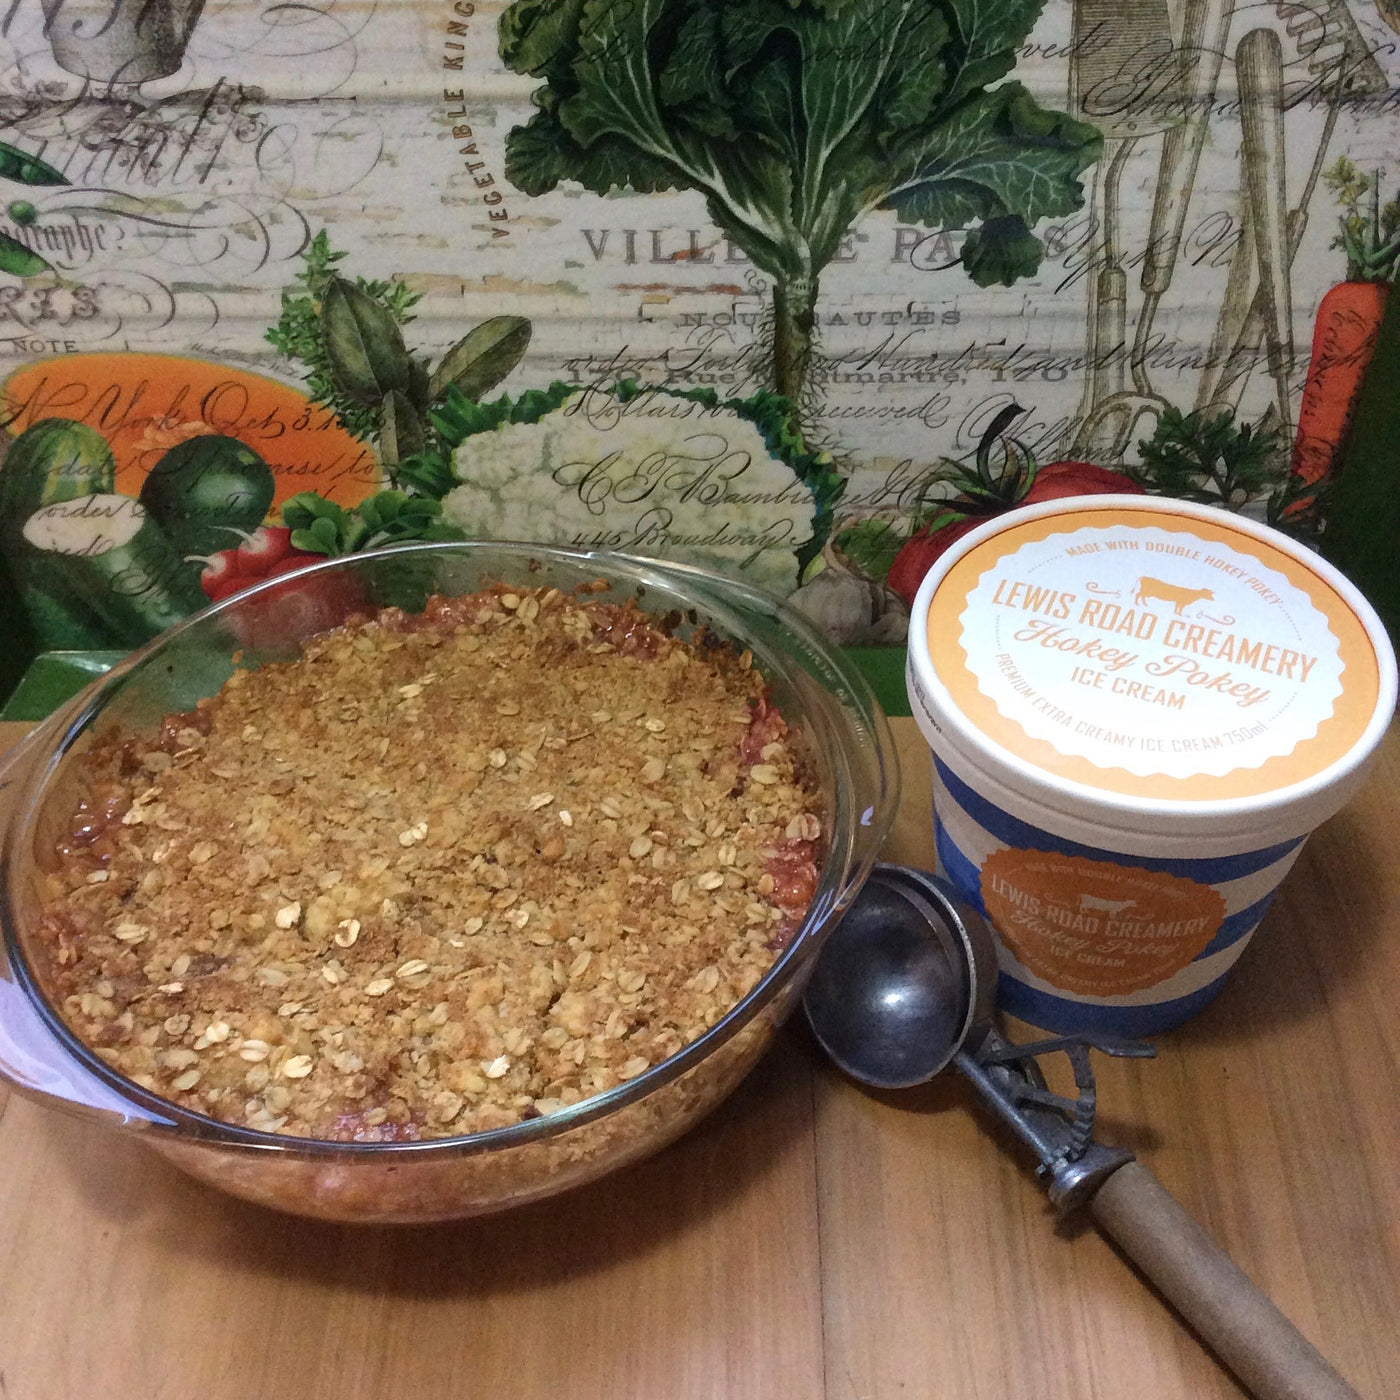 Rhubarb Season - Warming Crumble